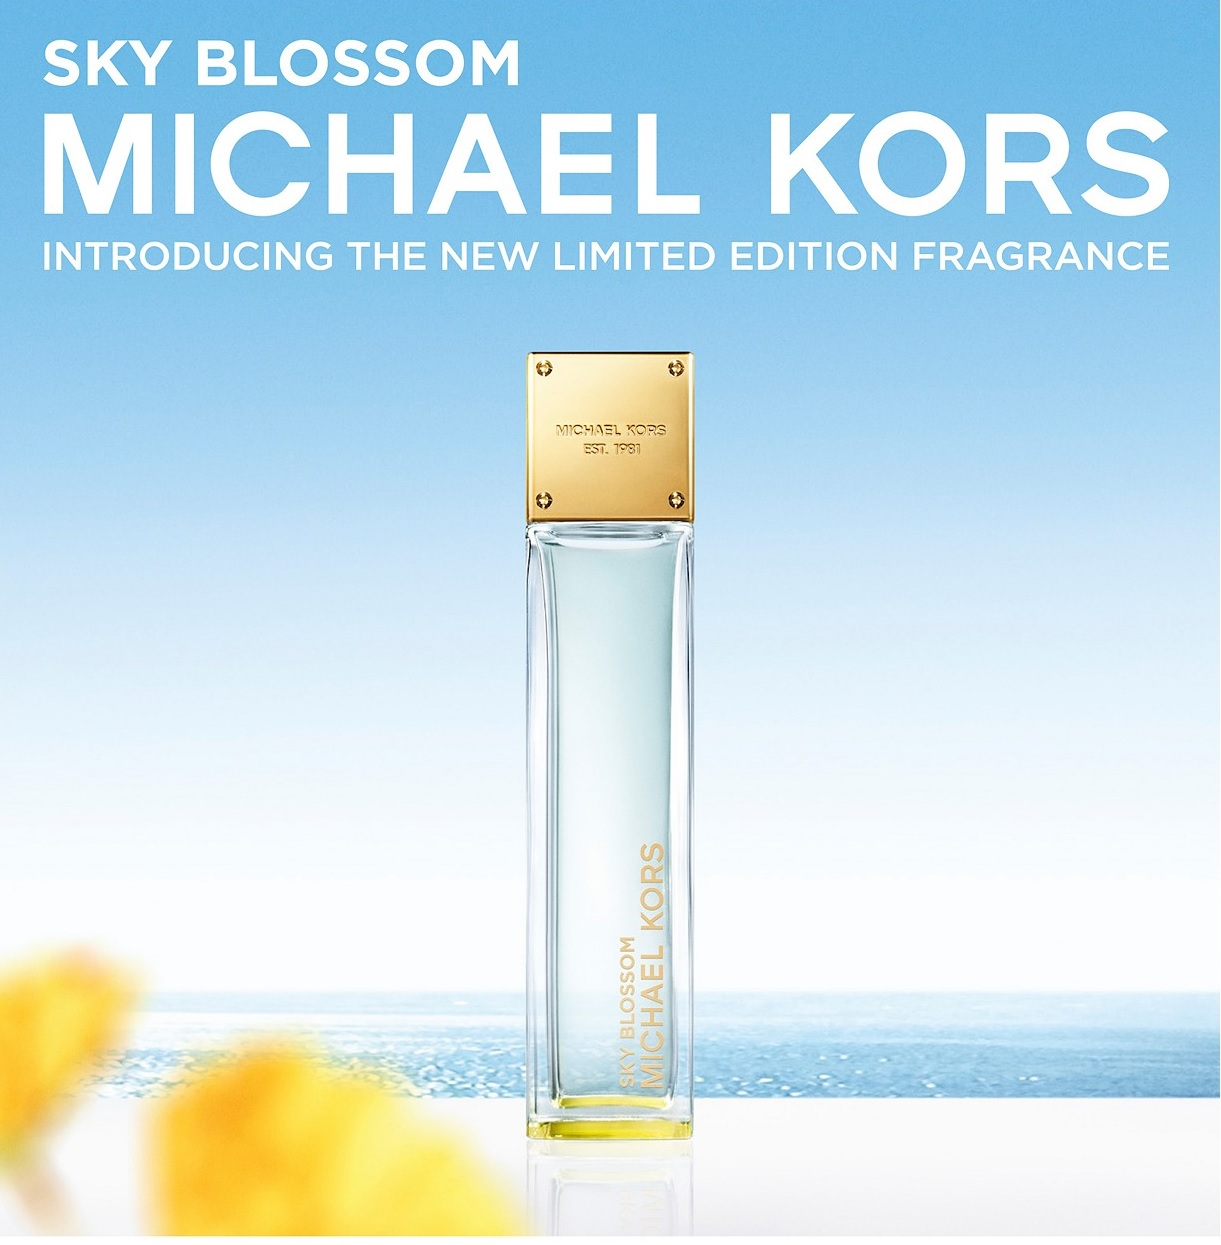 cb3f5ef3e7fa Sky Blossom Michael Kors perfume - a new fragrance for women 2018